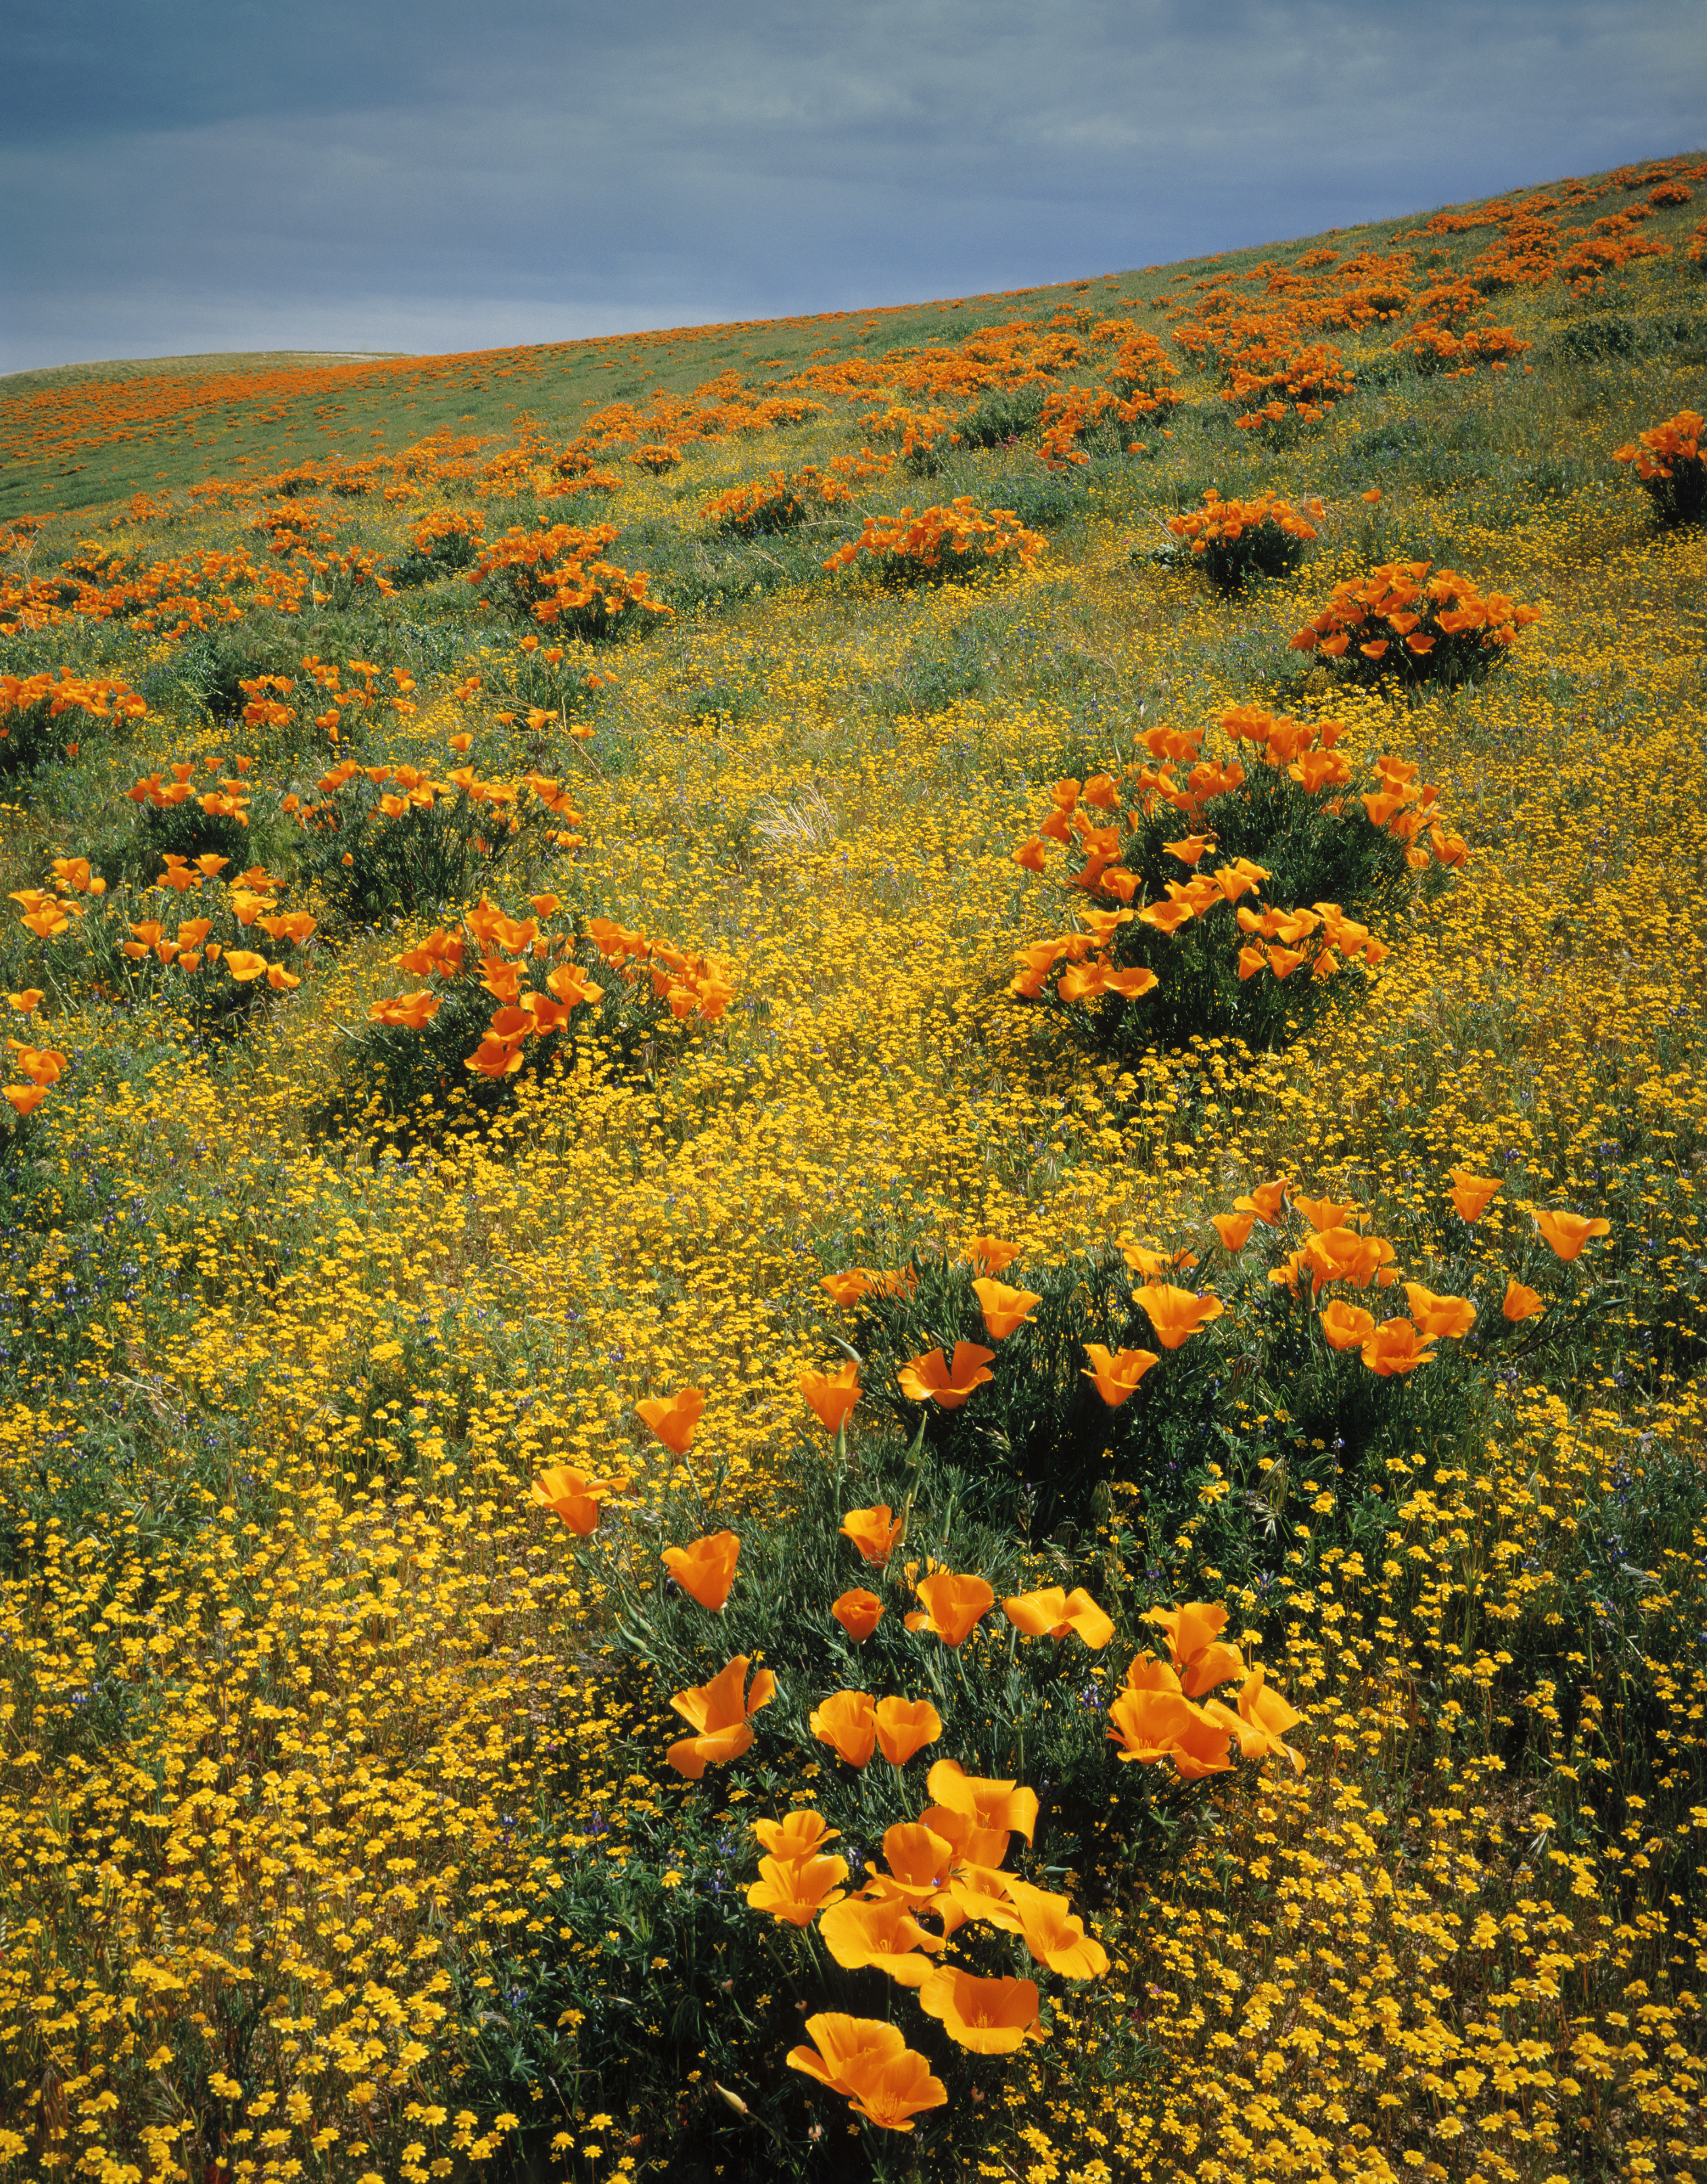 California poppies among goldfields california pictures california state flower poppy the flame flower la amapola cops de mightylinksfo Gallery